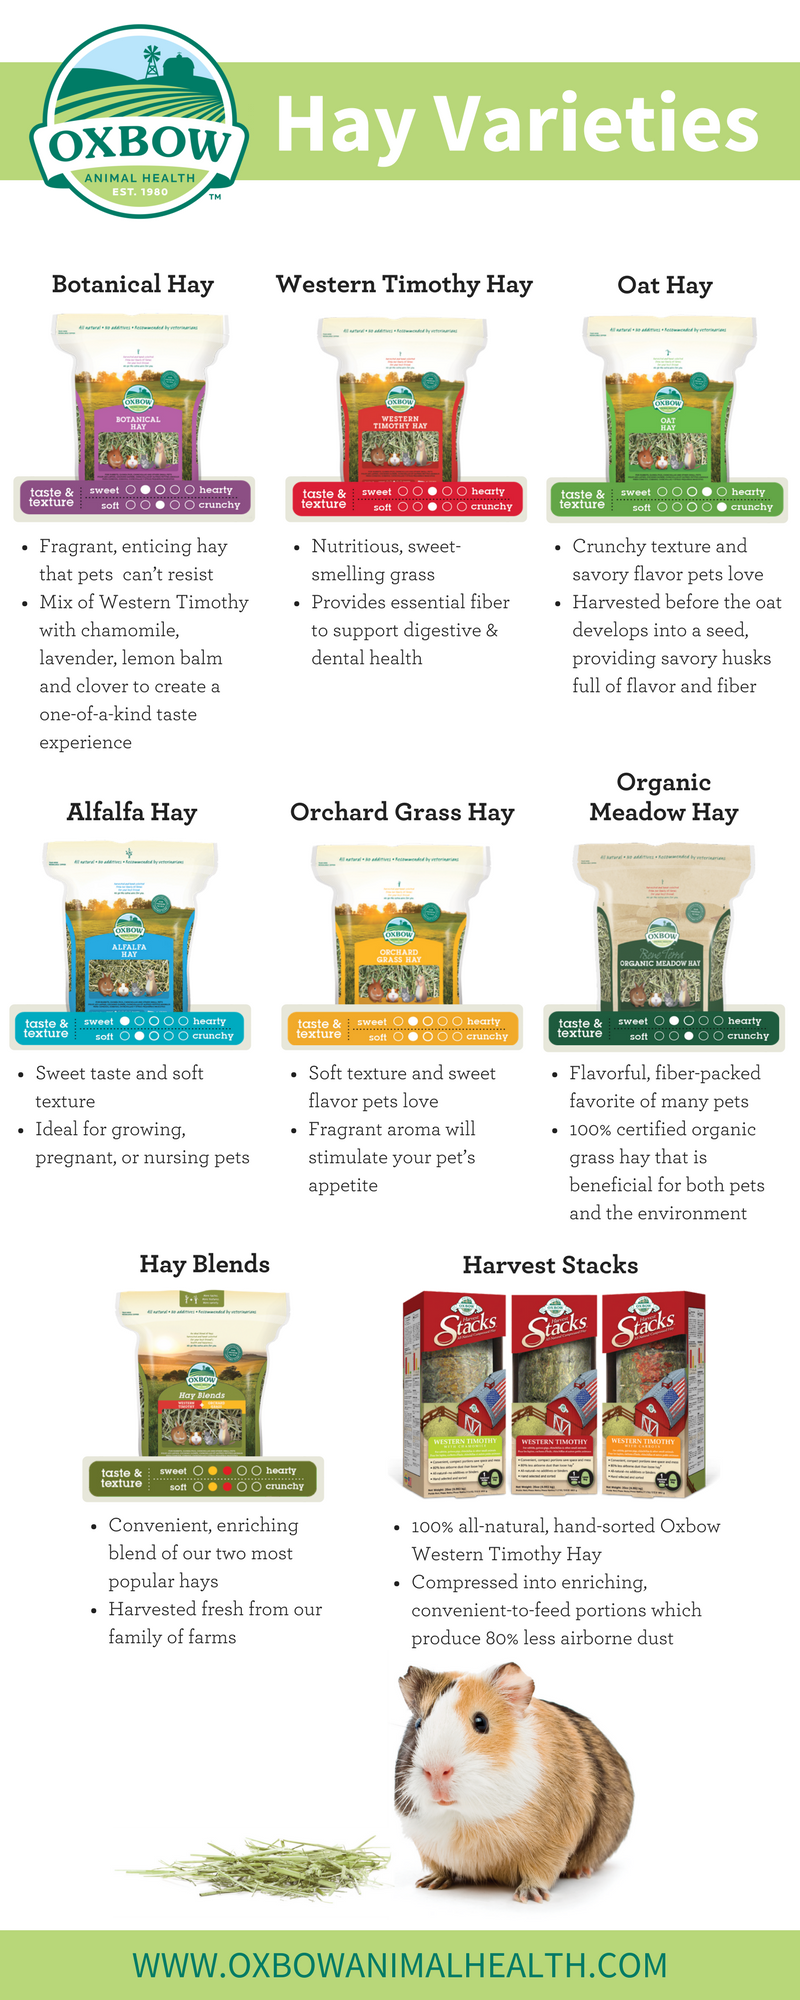 Hay Varieties (Infographic)